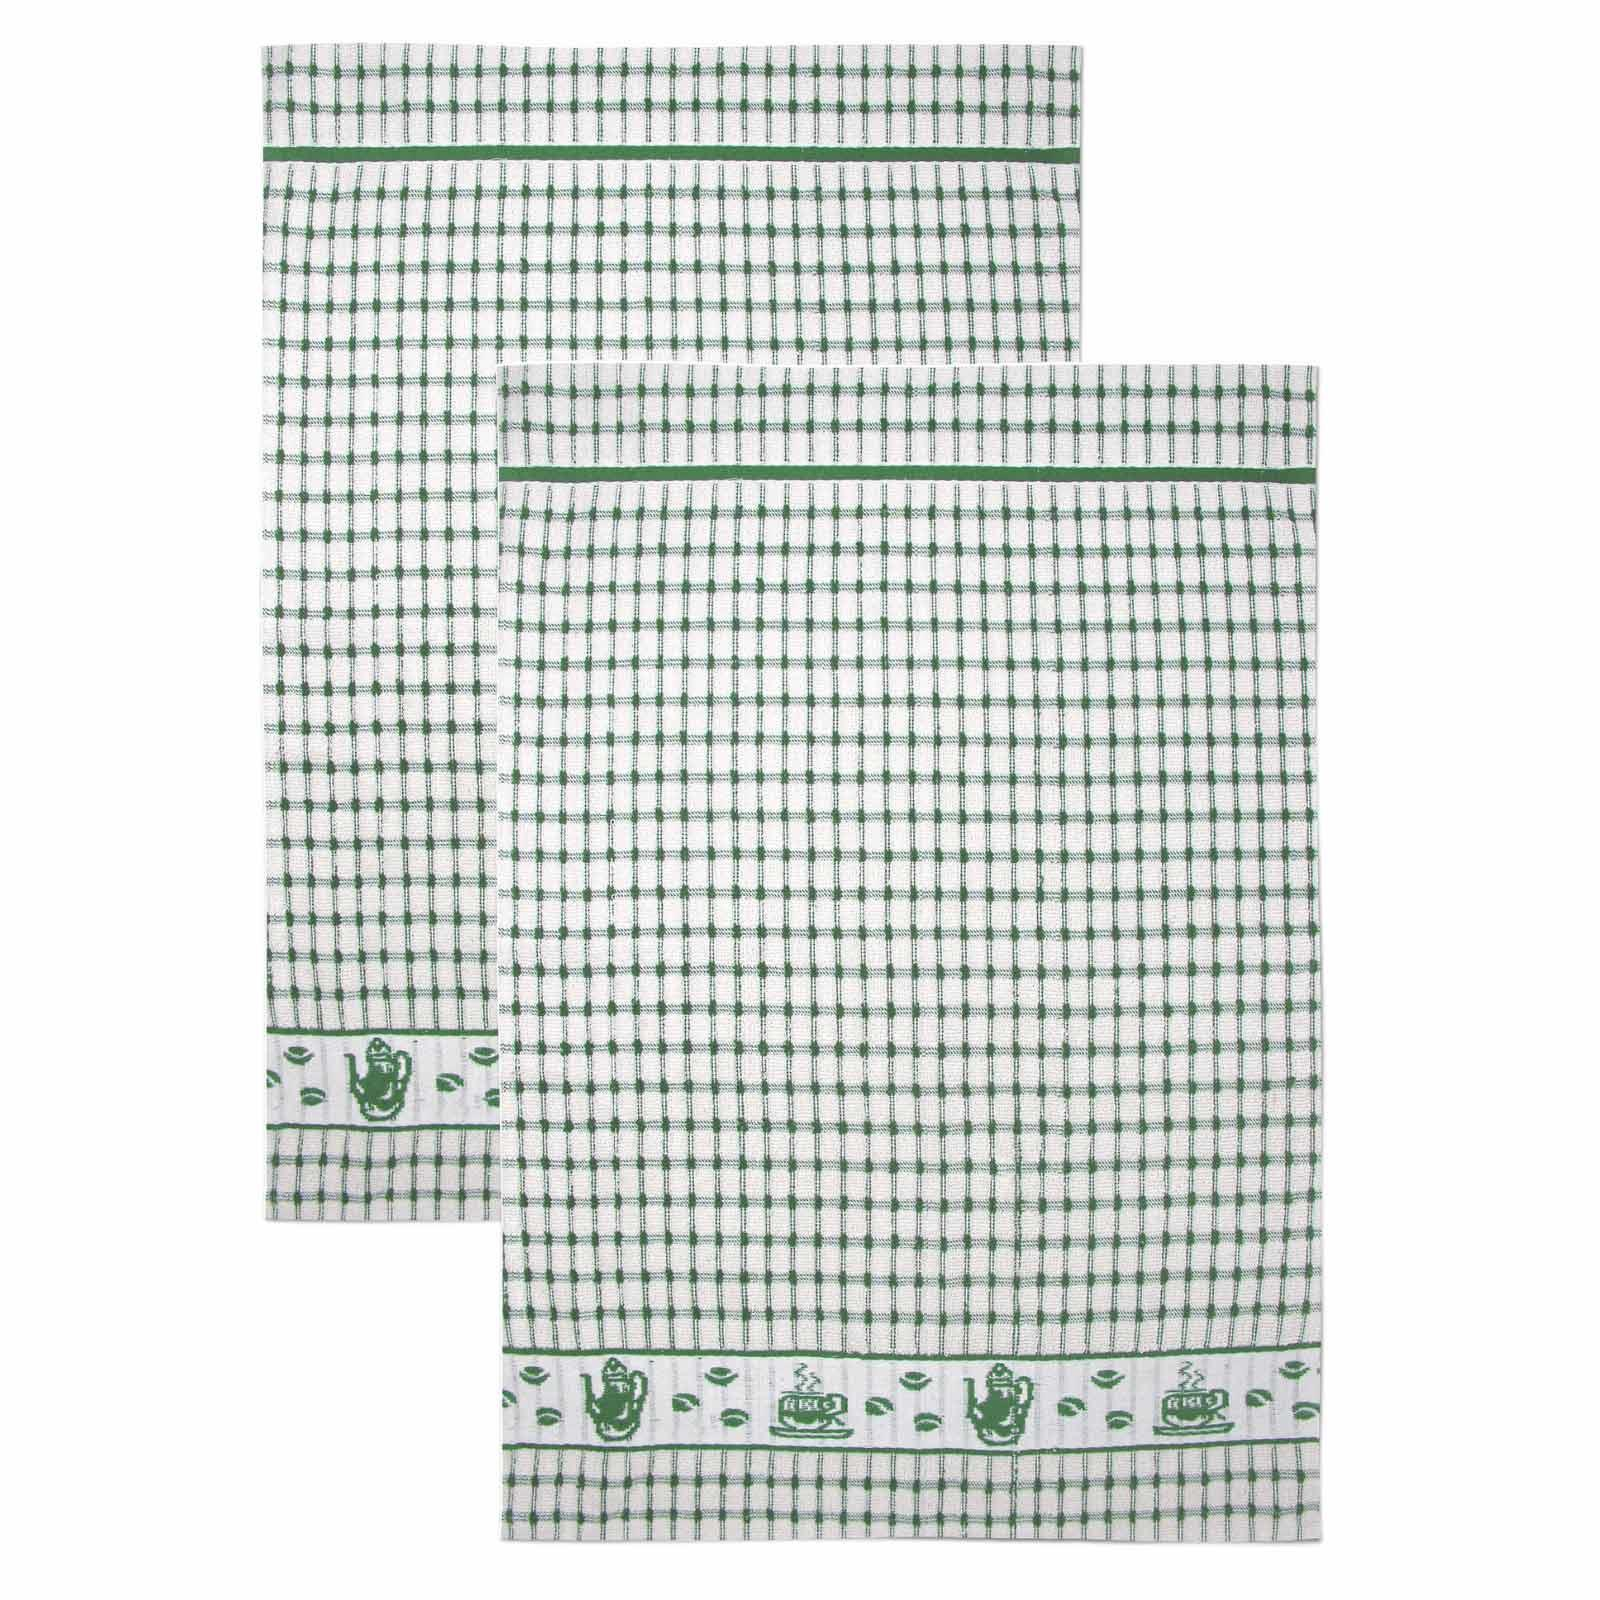 Packs-of-2-4-6-12-Tea-Towels-100-Cotton-Terry-Kitchen-Dish-Drying-Towel-Sets thumbnail 22